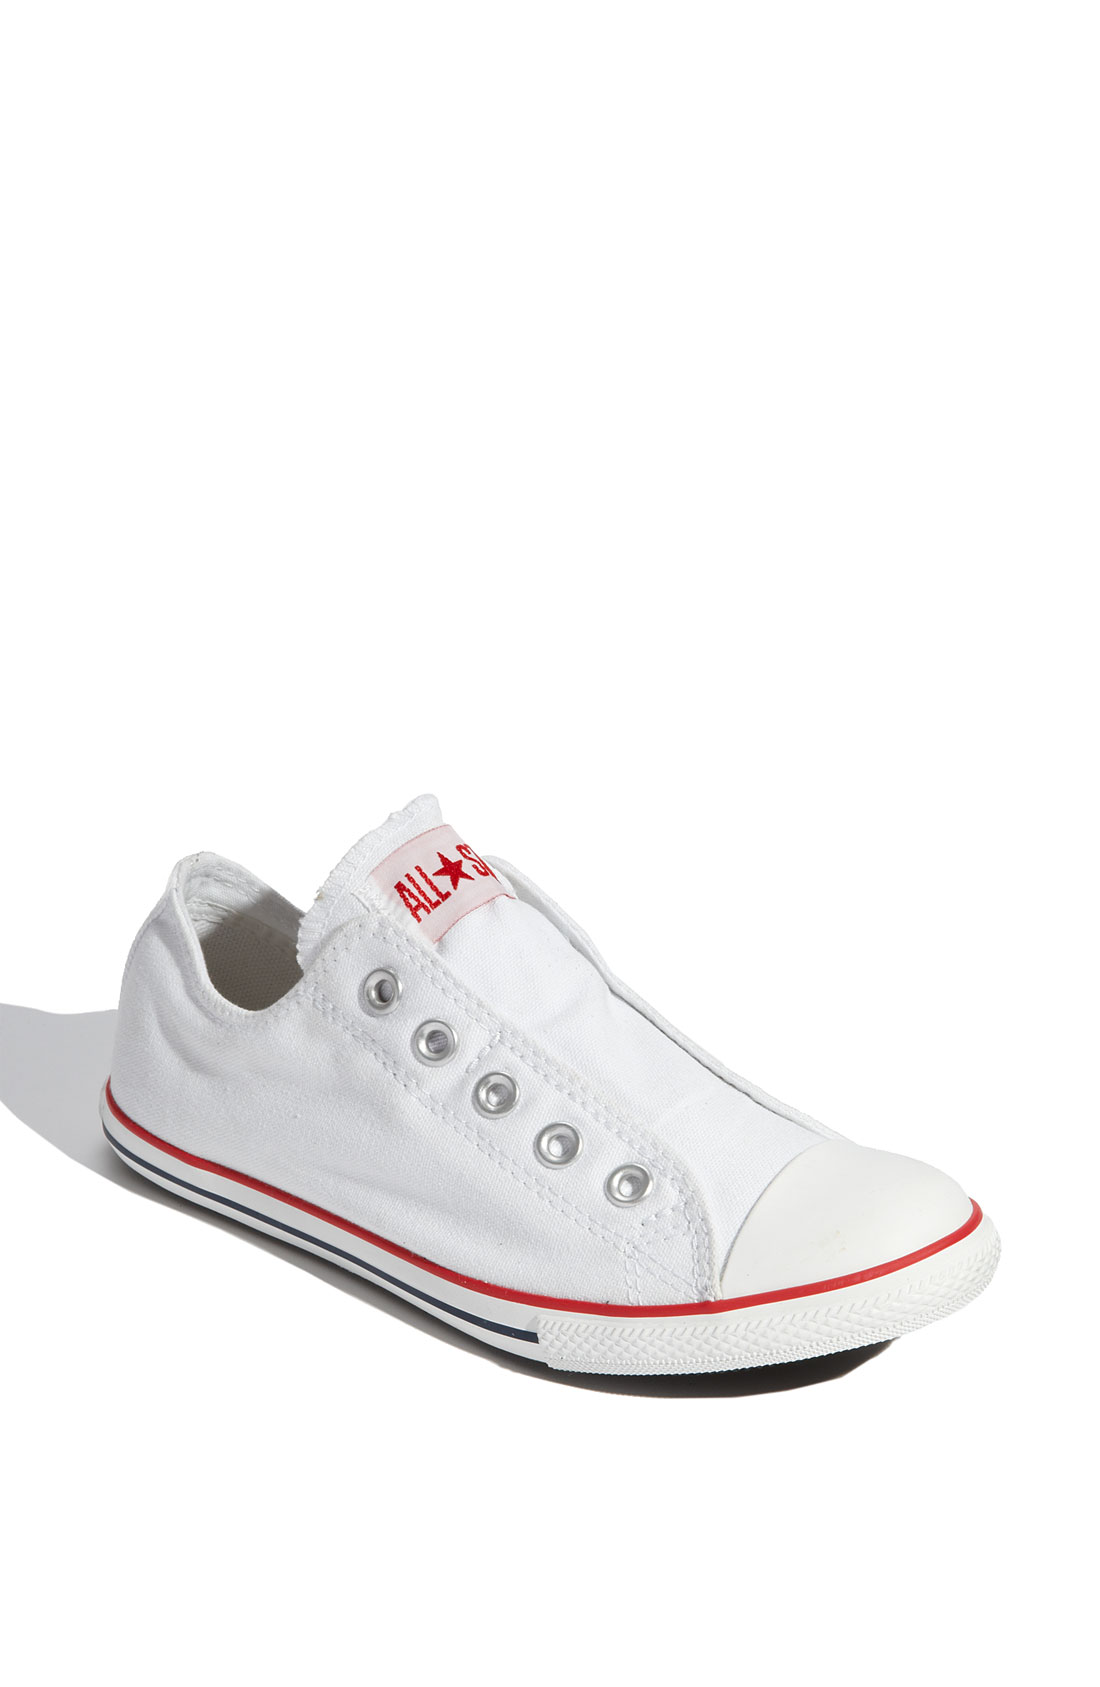 converse chuck taylor all star slim slip on in white lyst. Black Bedroom Furniture Sets. Home Design Ideas